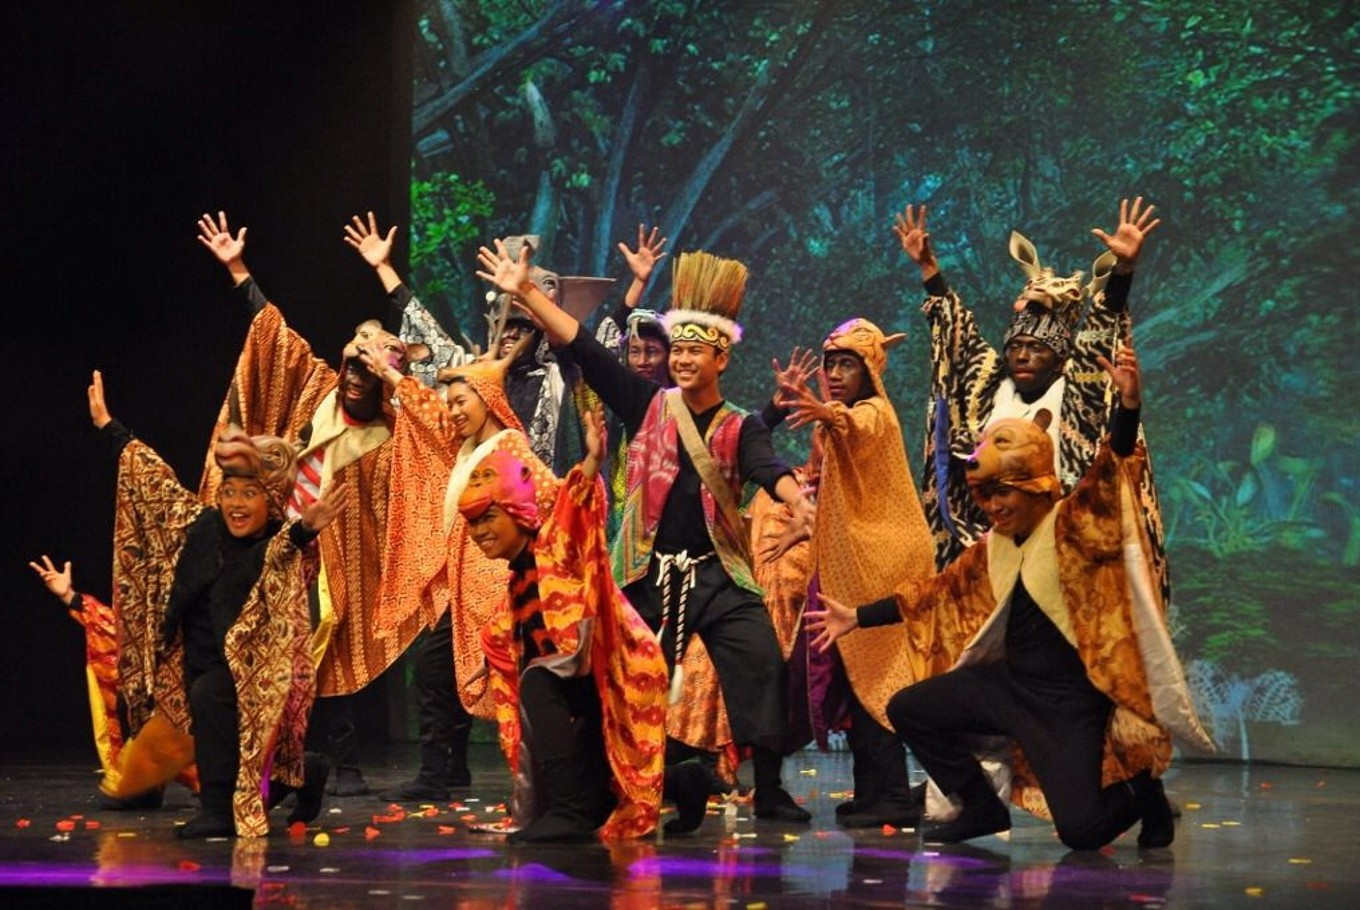 Indonesian musical to perform at children's festival in Japan